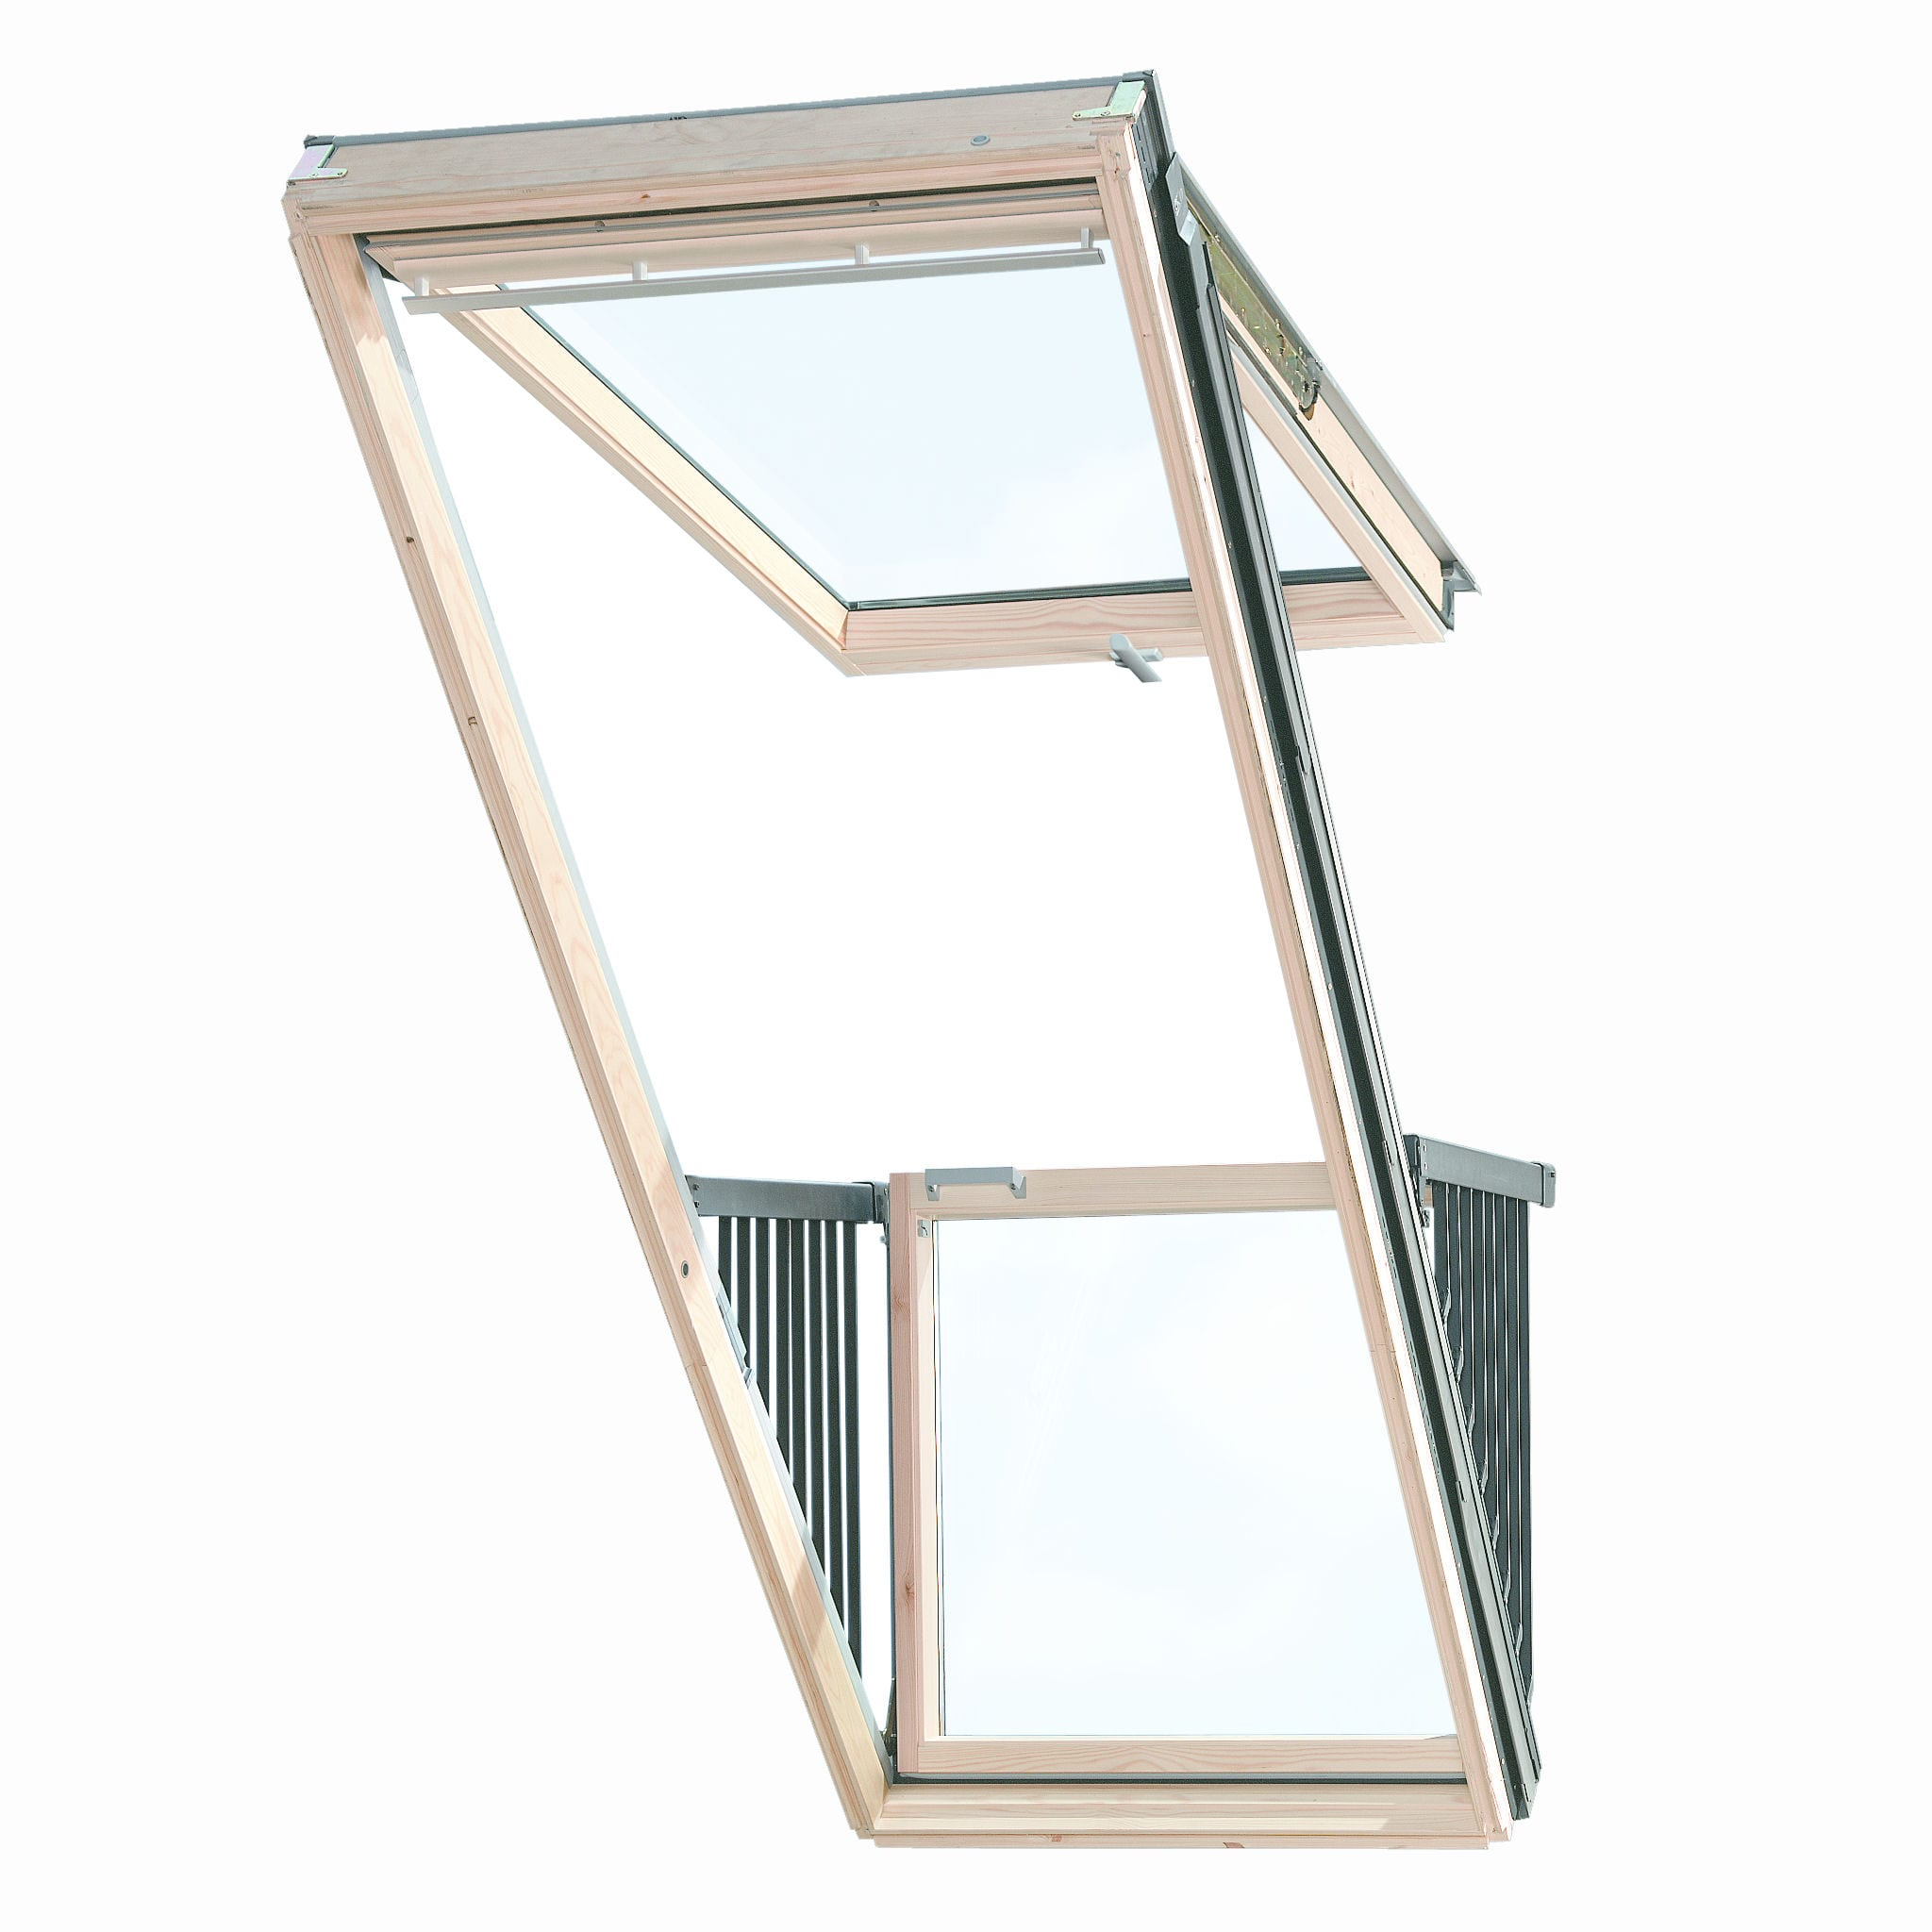 Velux Cabrio Balcony Gdl Sd0w1 94cm W X 252cm H Doors Windows Stairs